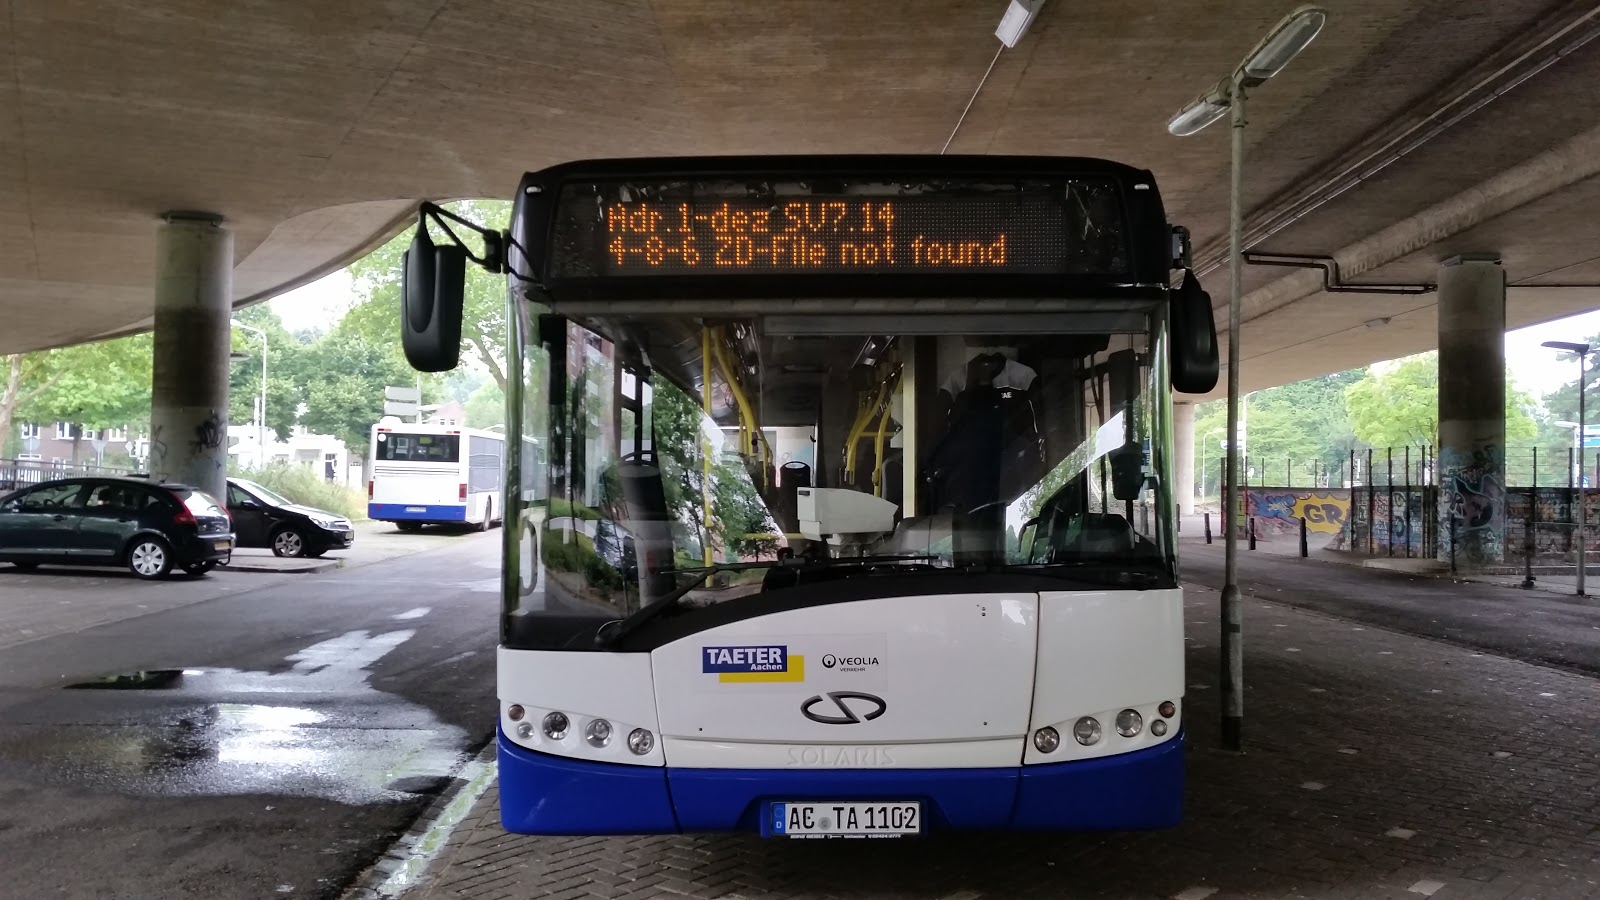 Bus to file not found